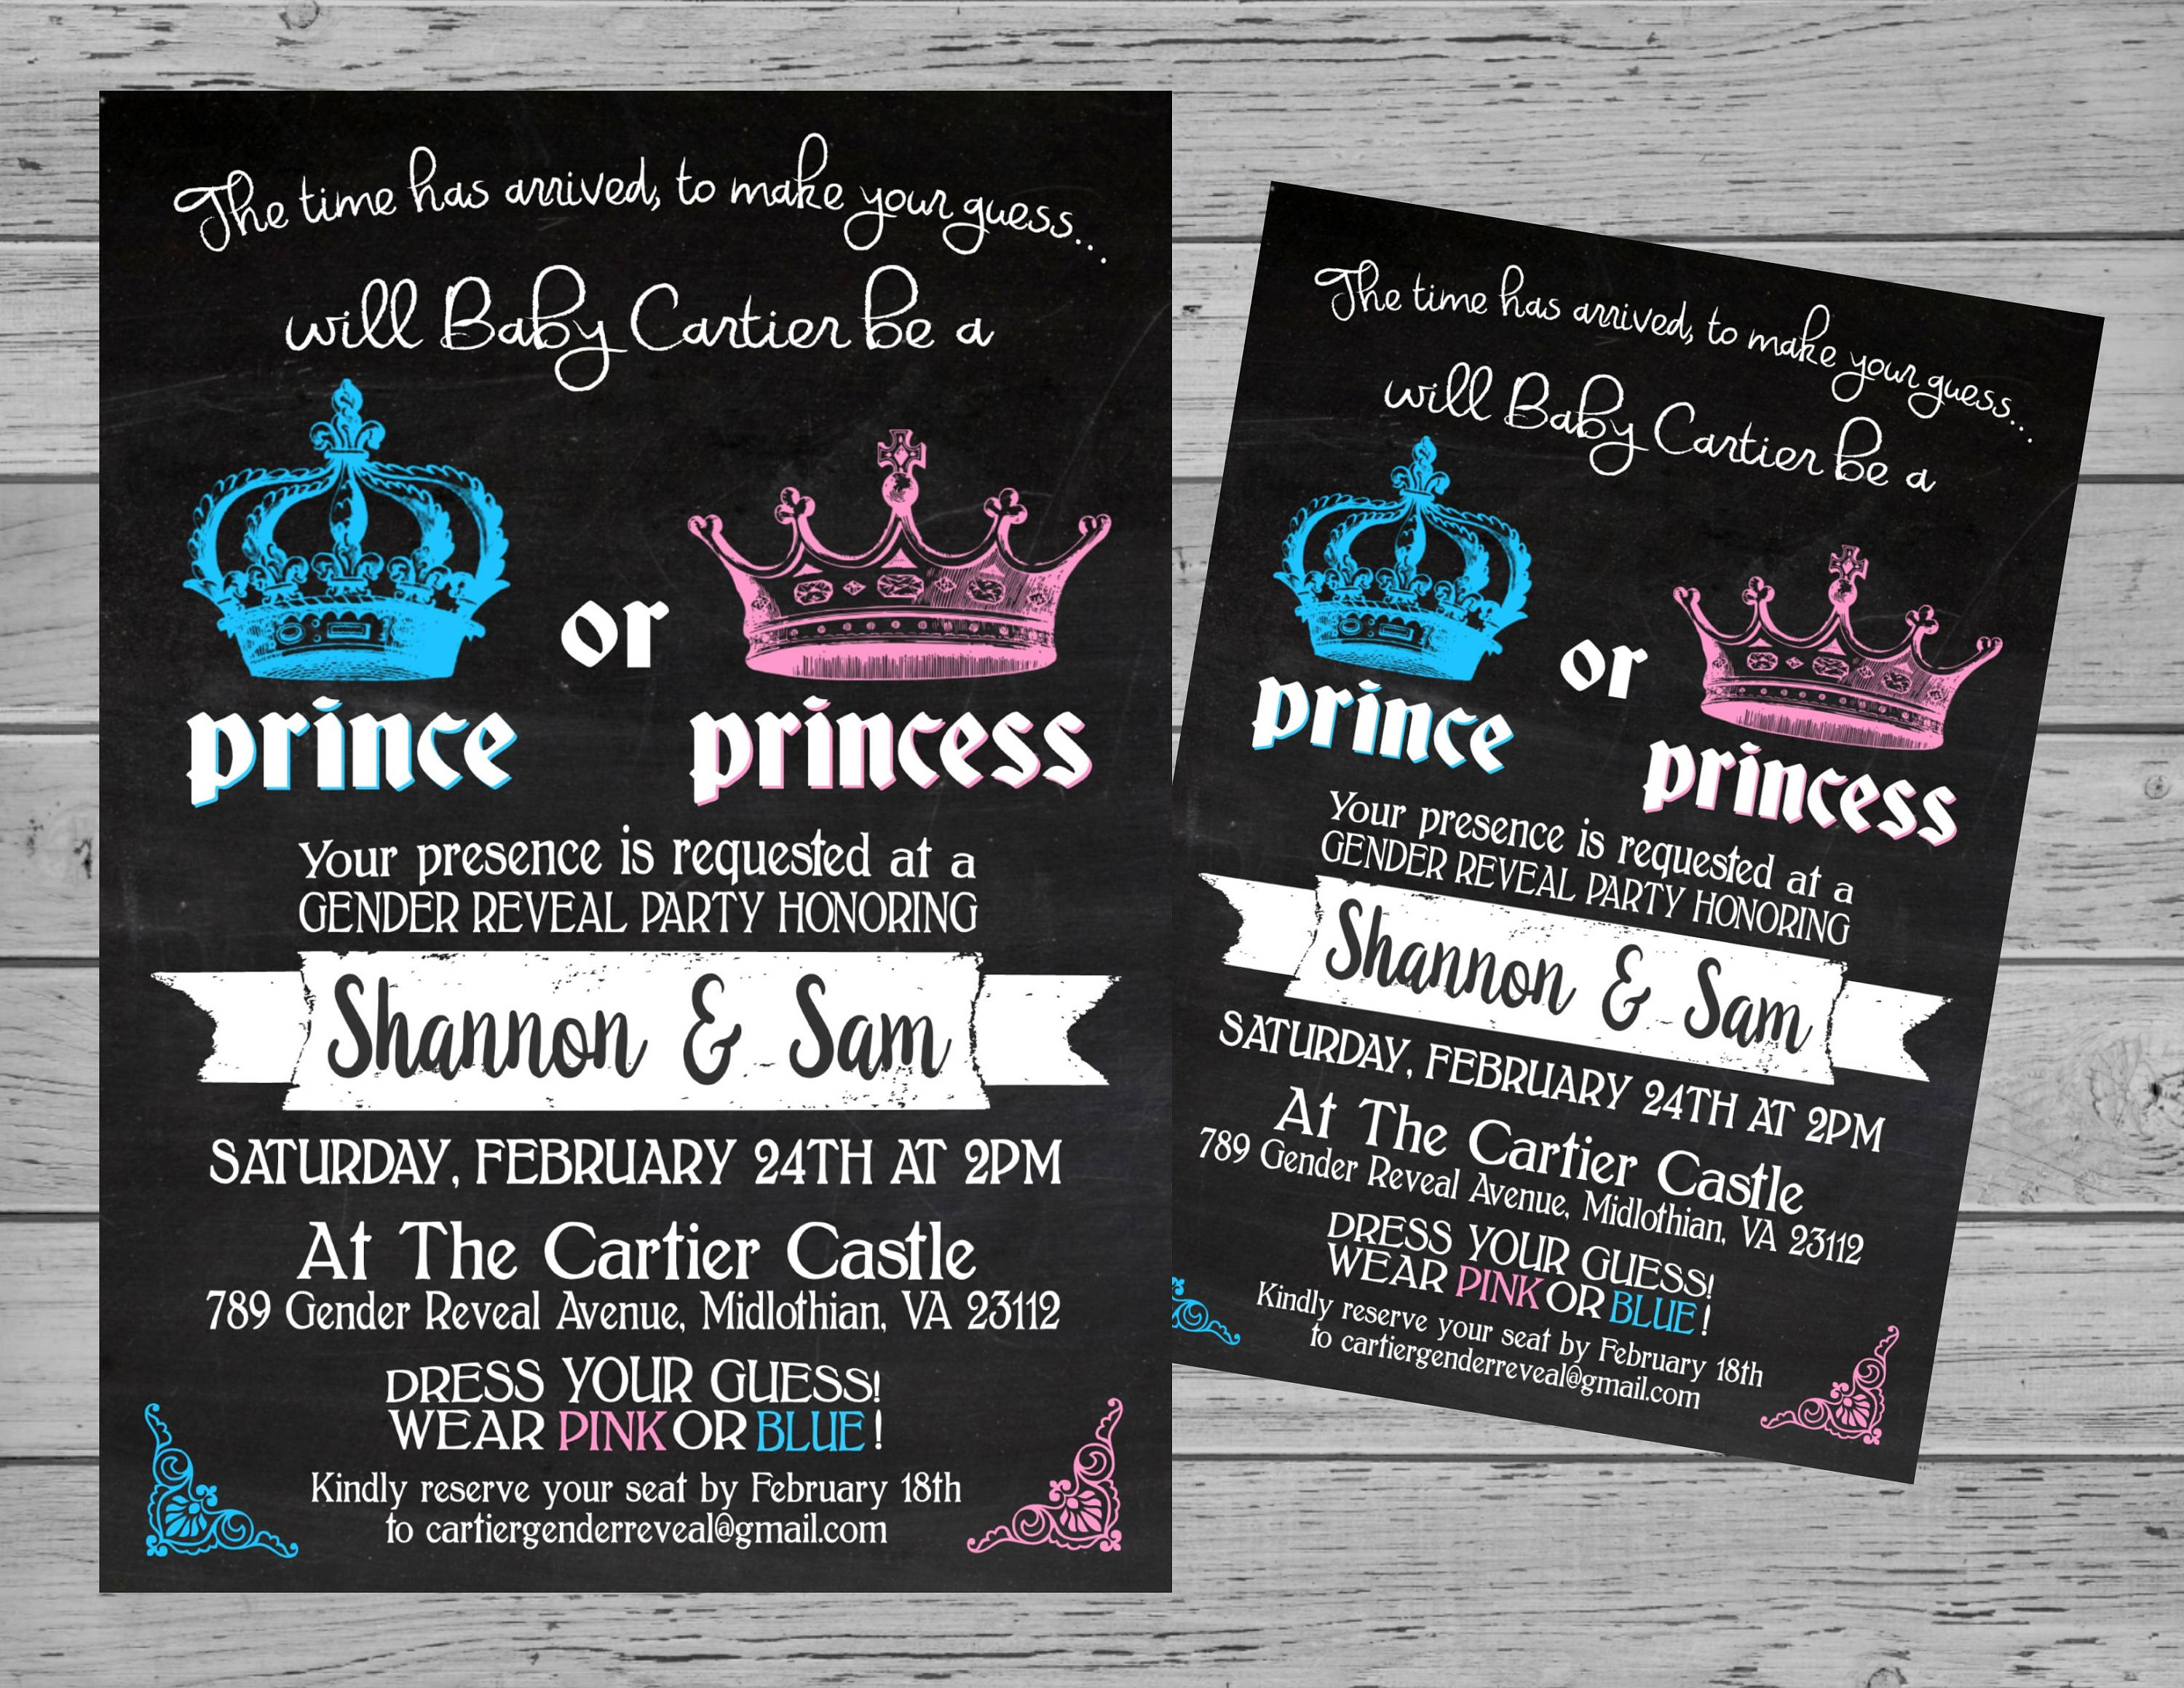 Prince or Princess Gender Reveal Party Invitation Digital